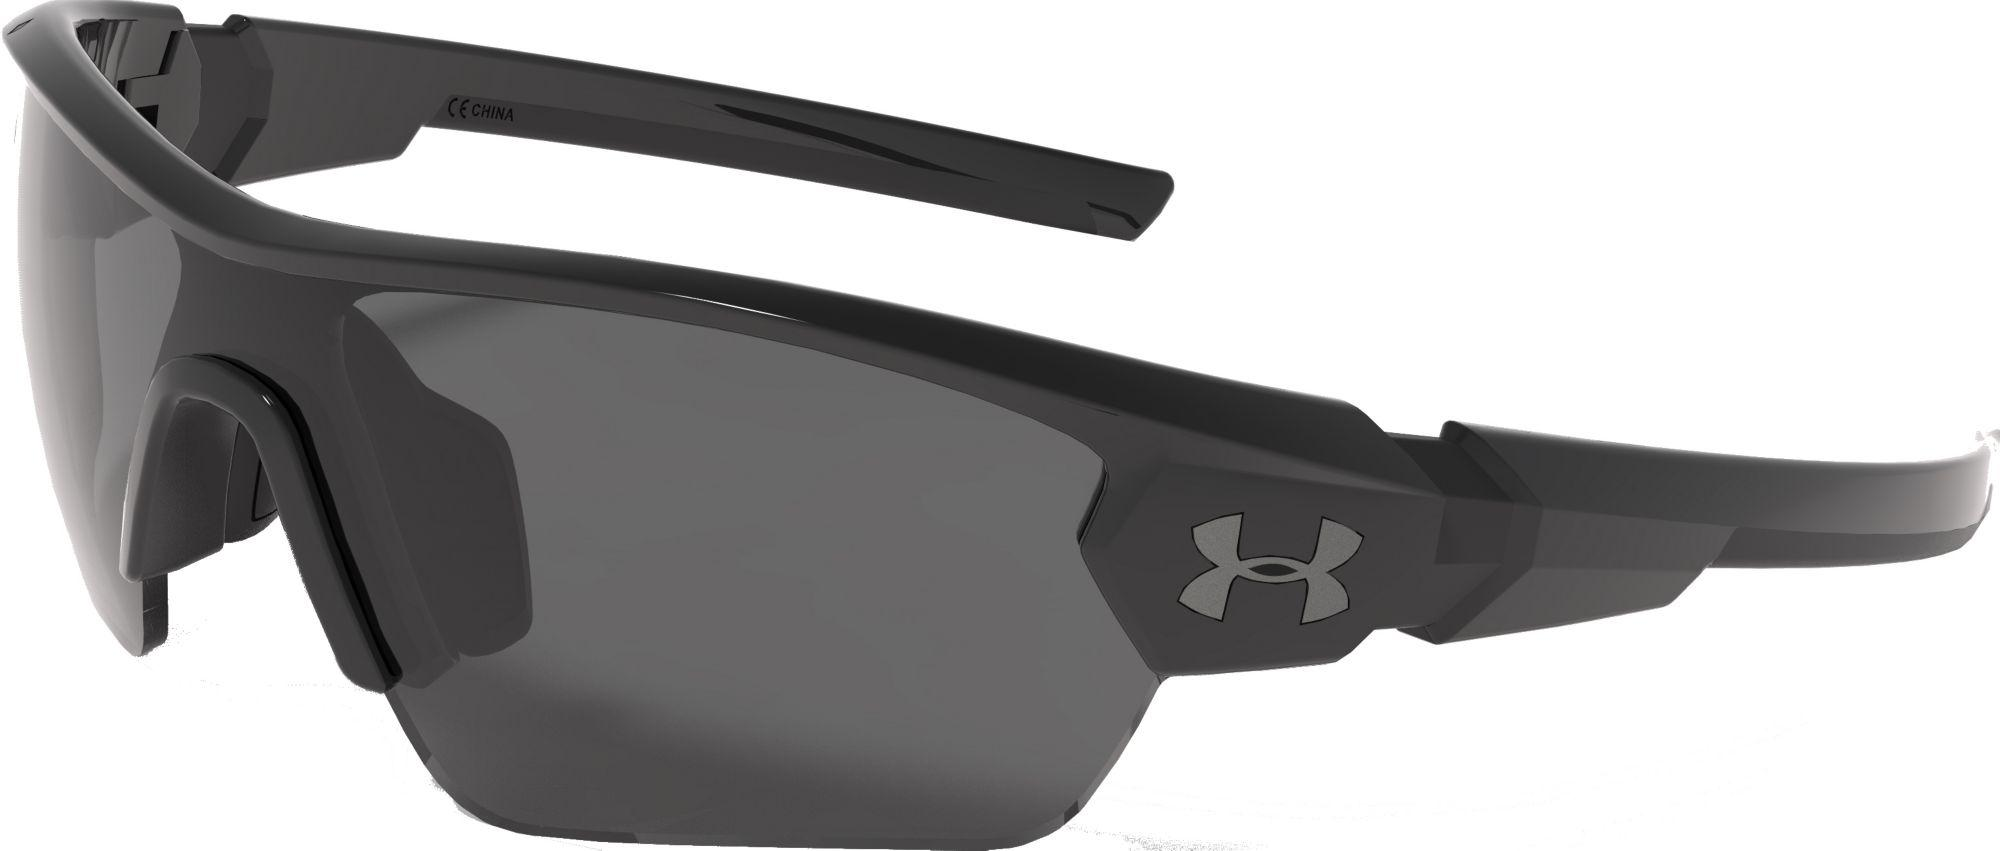 c17f9ee41b Lyst - Under Armour Youth Menace Sunglasses in Black for Men